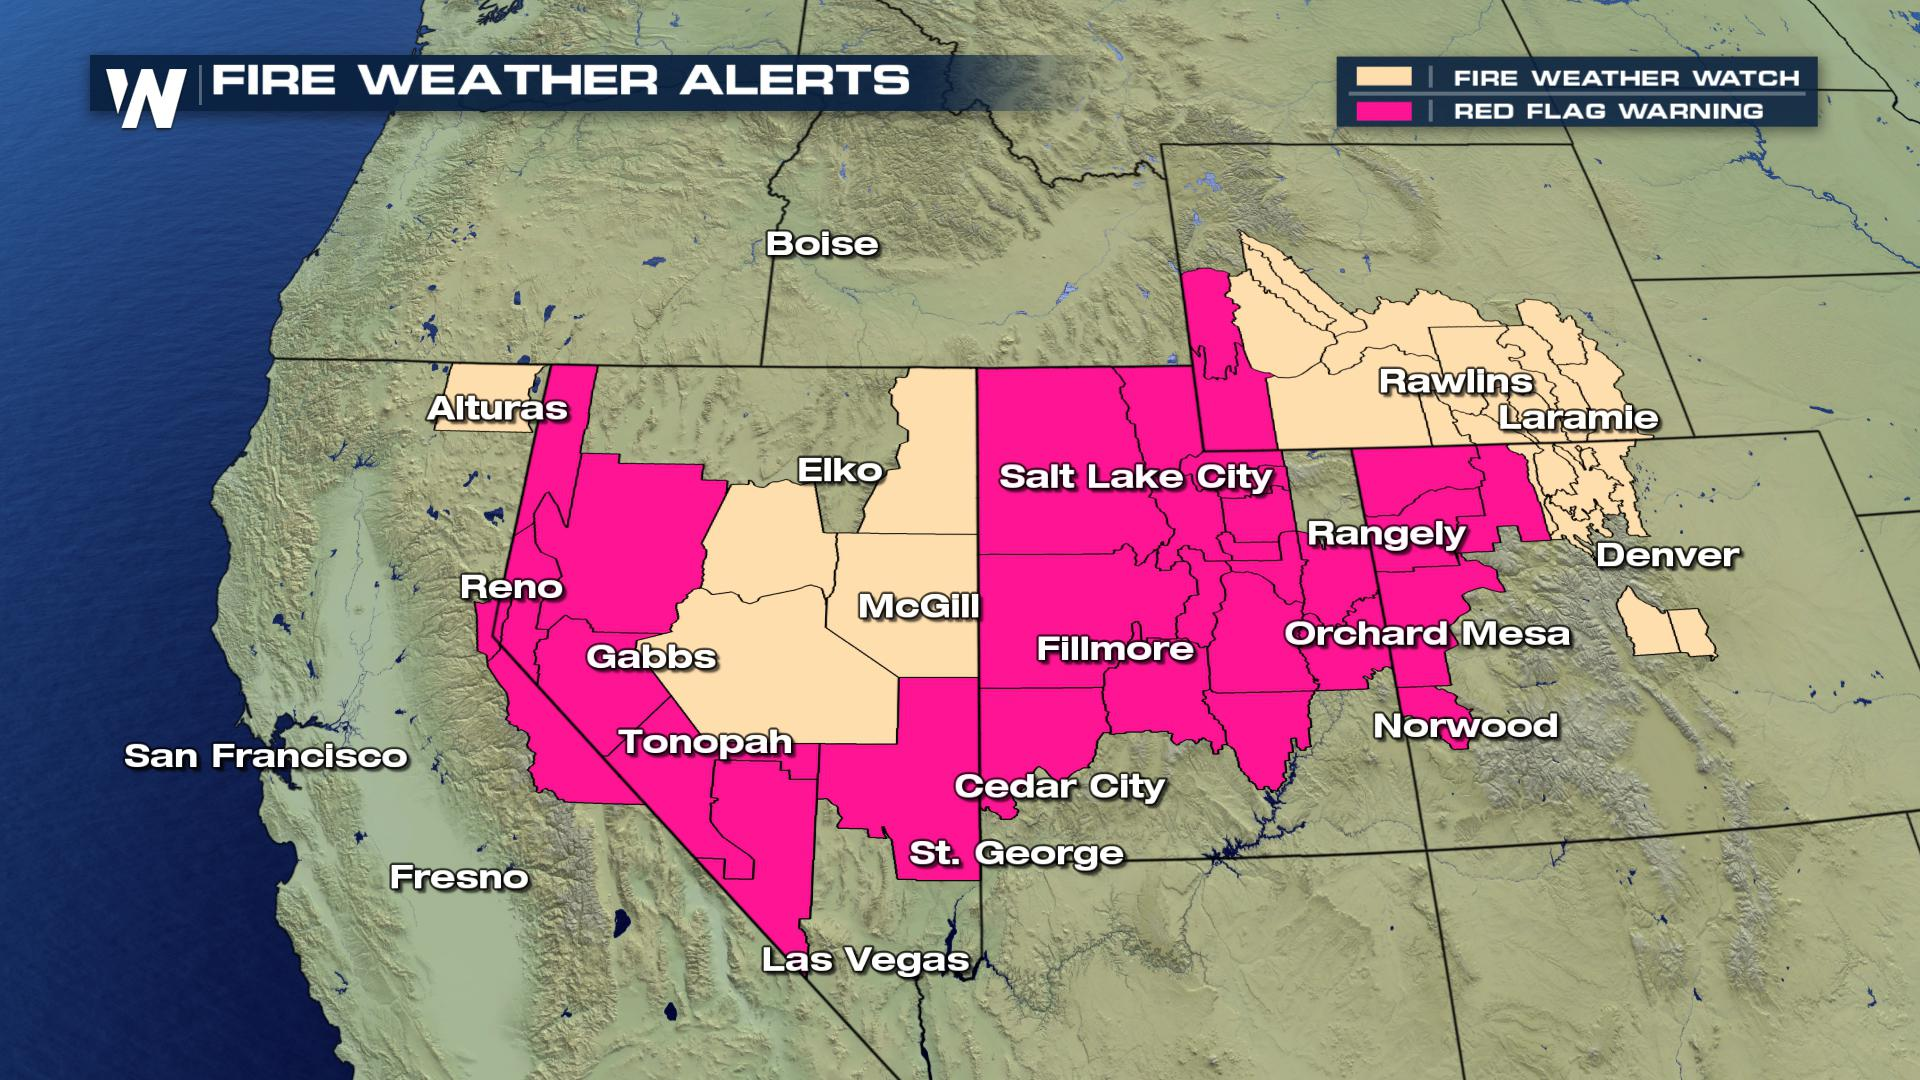 Red Flag Warnings for Parts of Western United States